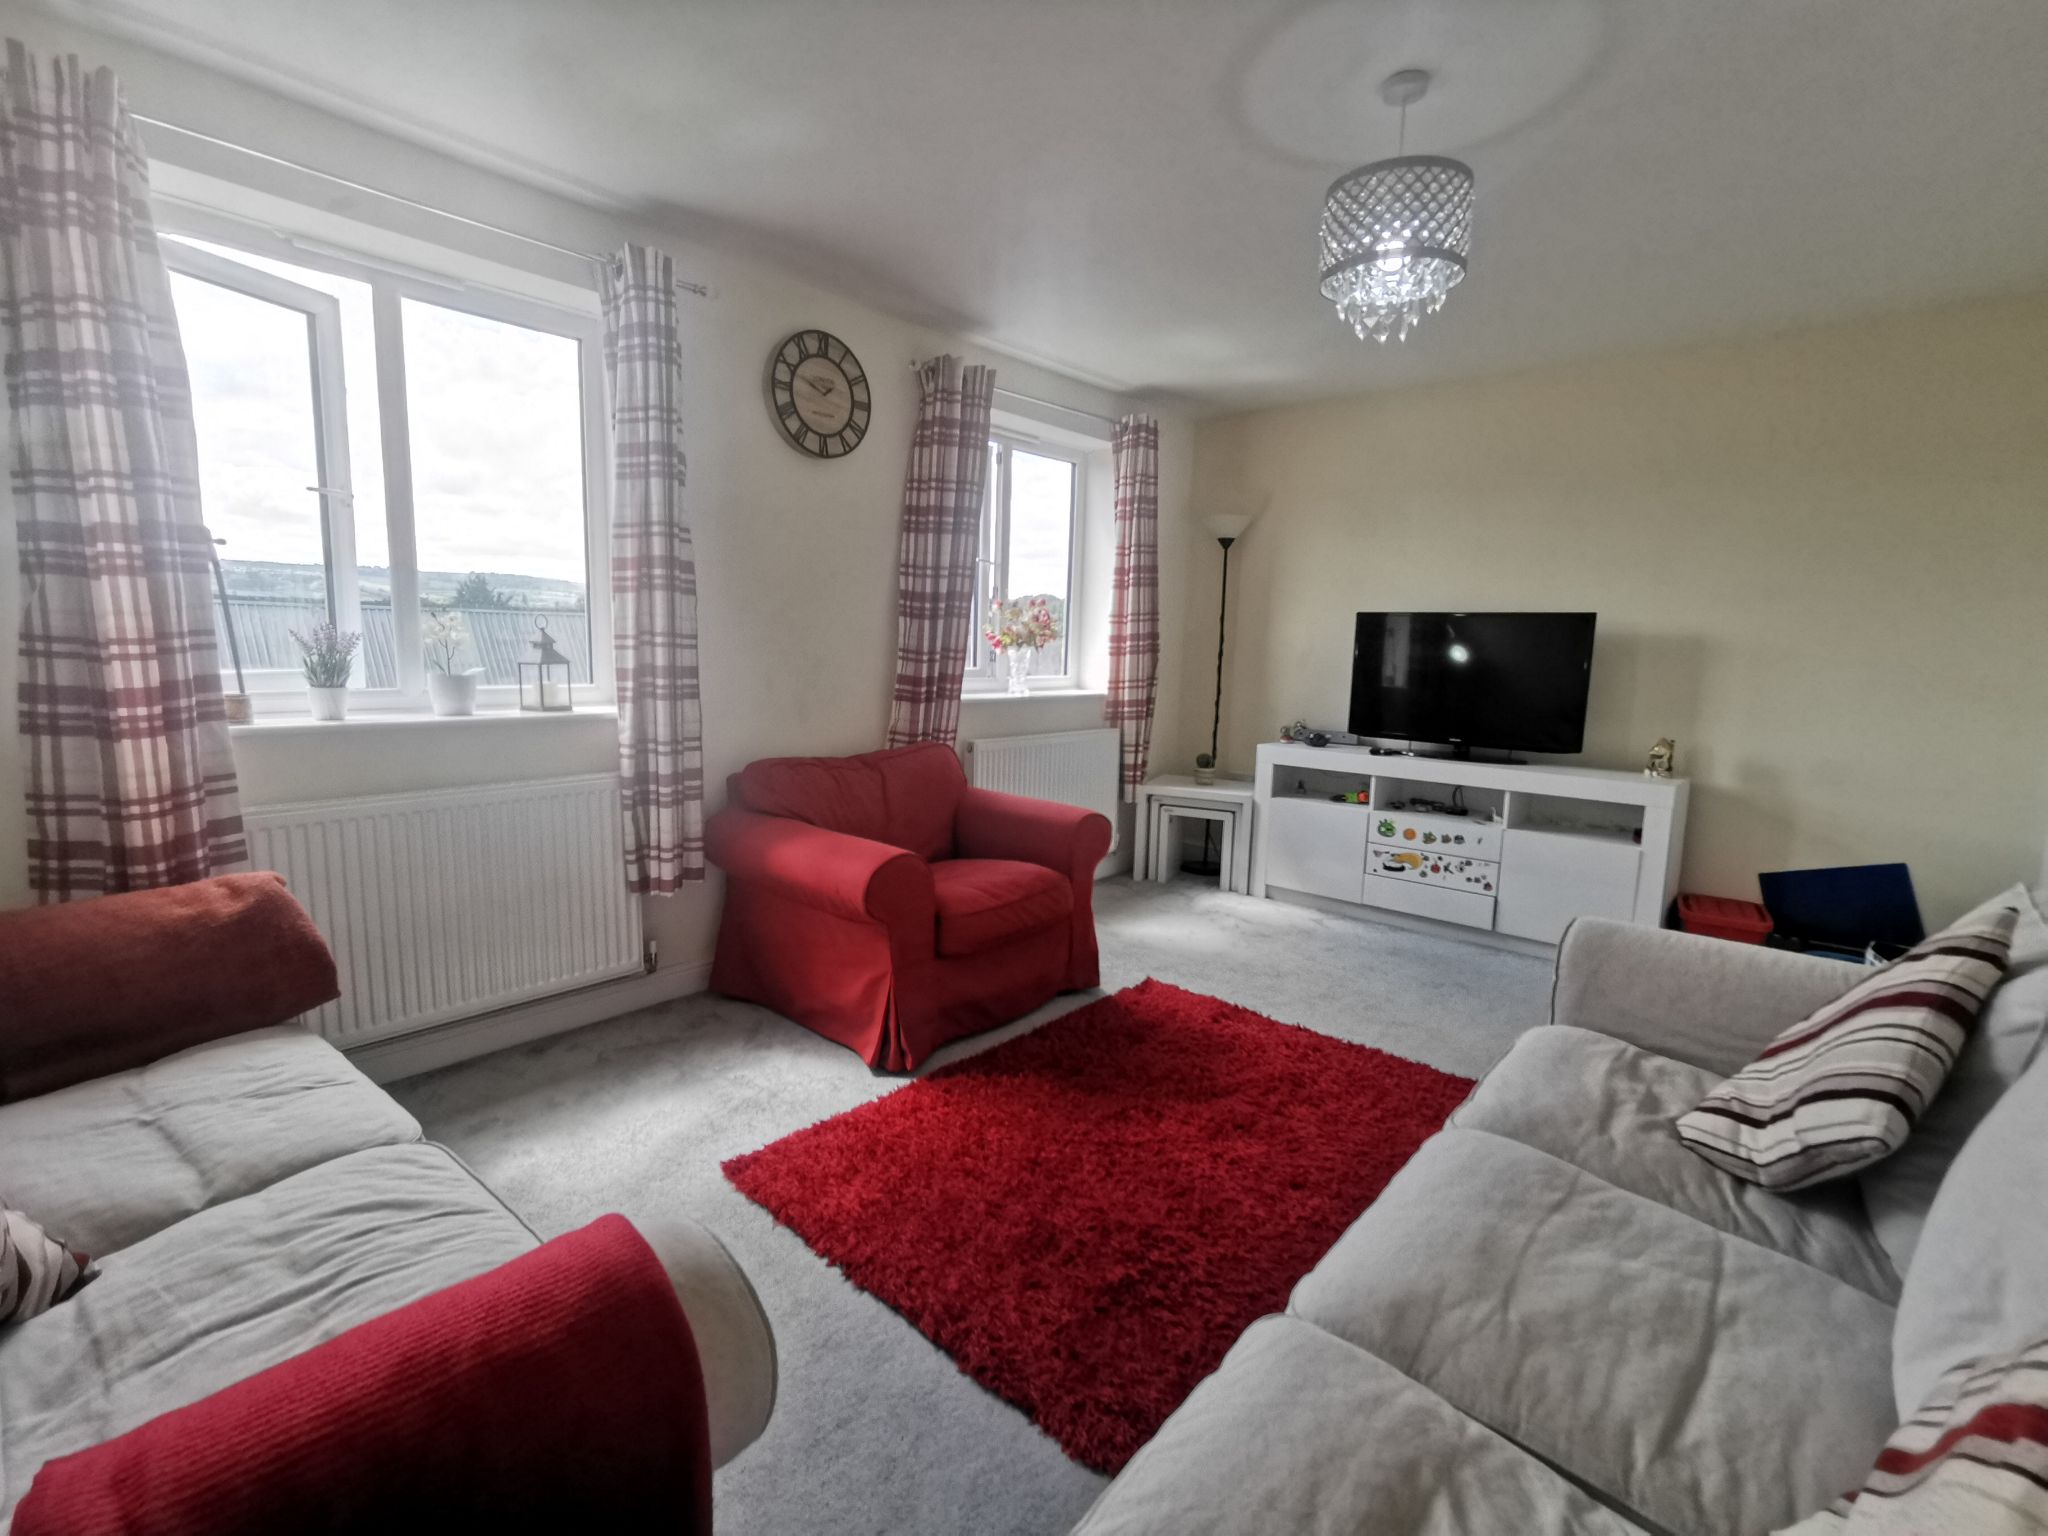 3 bedroom end terraced house For Sale in Bradford - Photograph 2.